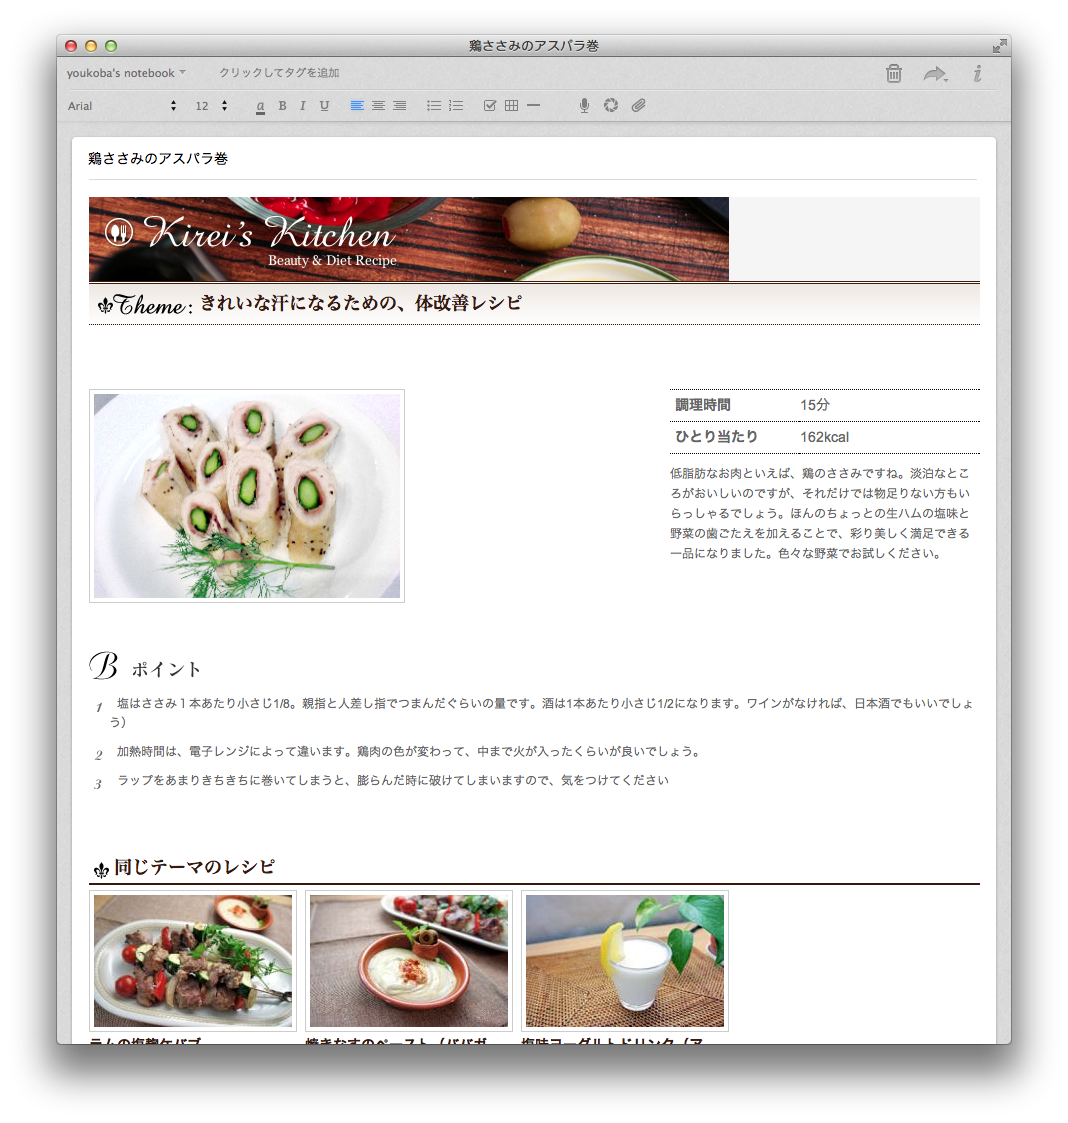 evernote_food_2-1_3